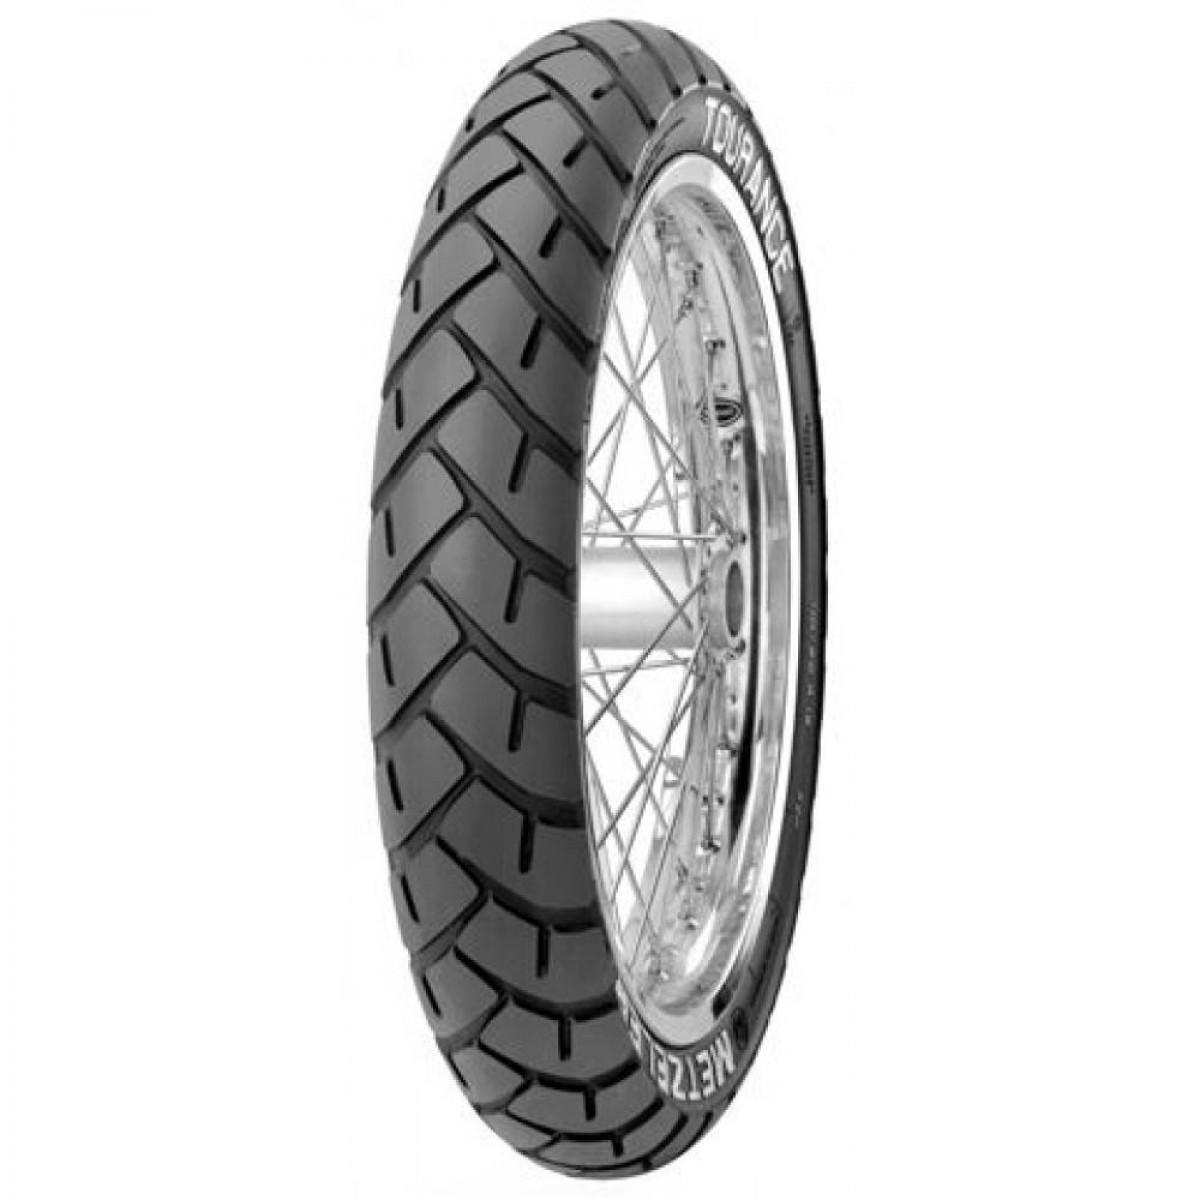 Metzeler Tourance 110/80 R 19 Tubeless 59 V Front Two-Wheeler Tyre